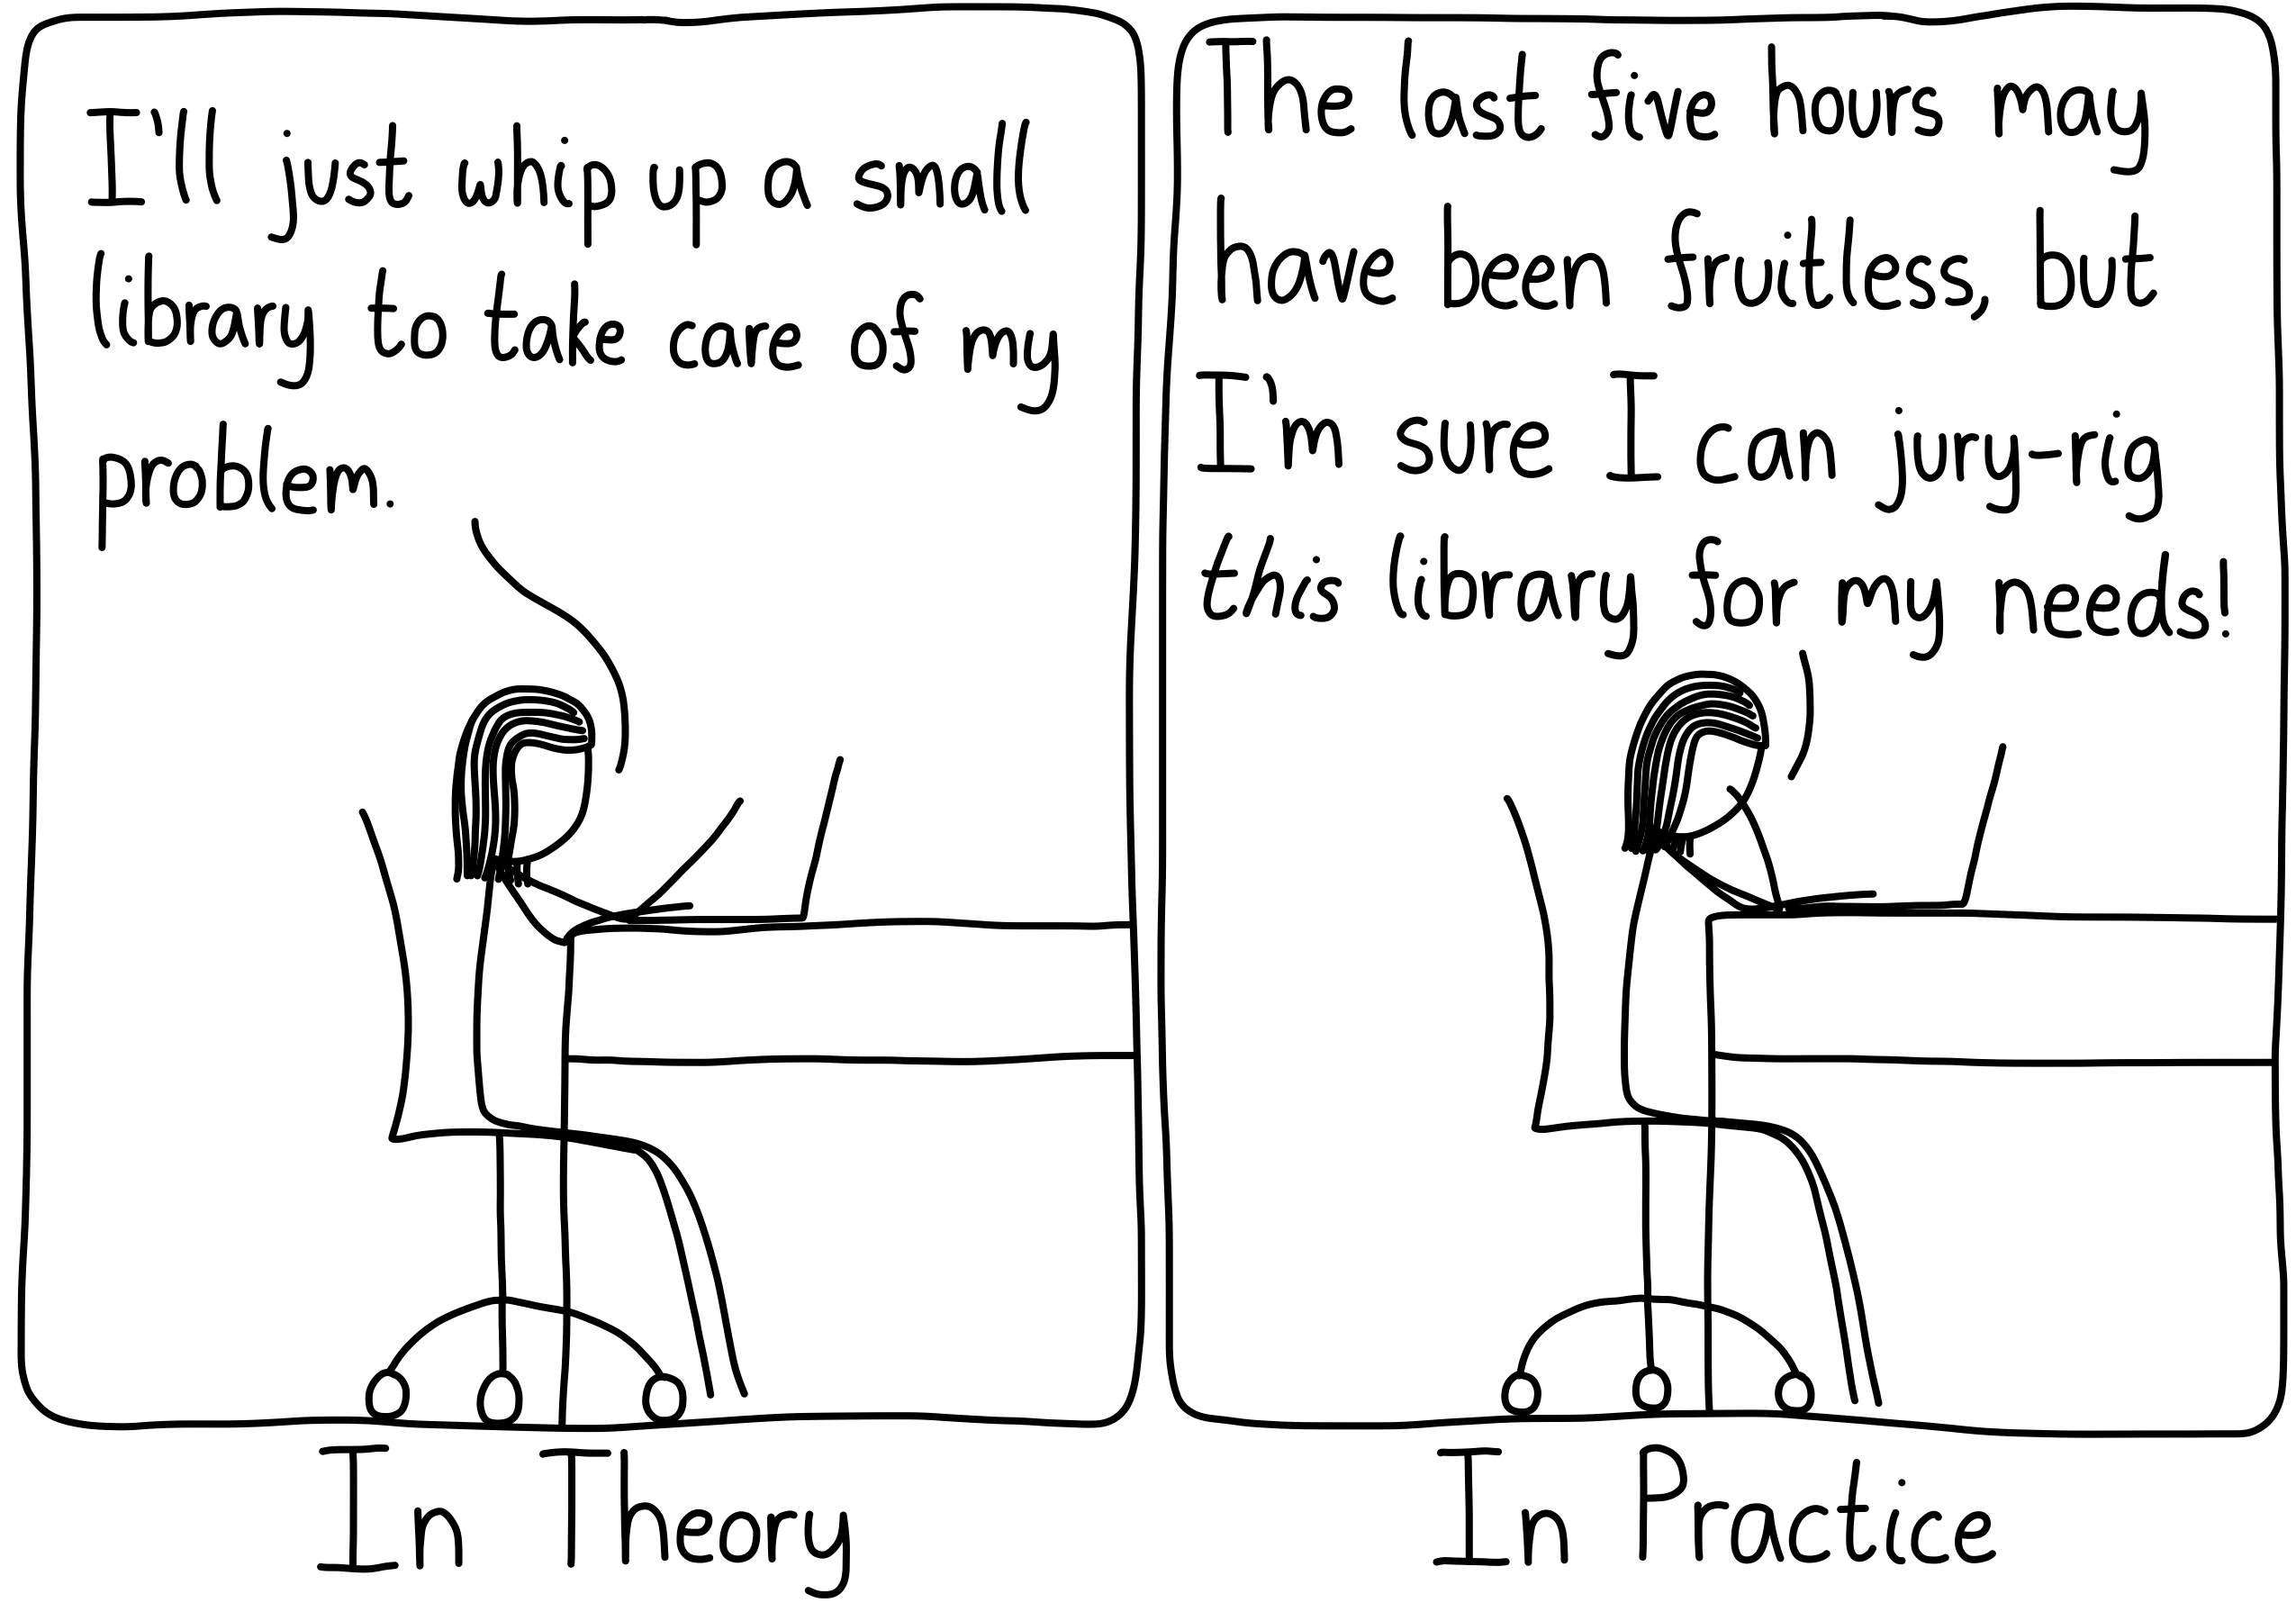 """Left panel (In Theory): """"I'll just whip up a small library to take care of my problem."""" Right panel (In Practice): """"The last five hours may have been fruitless, but I'm sure I can jury-rig *this* library for my needs!"""""""